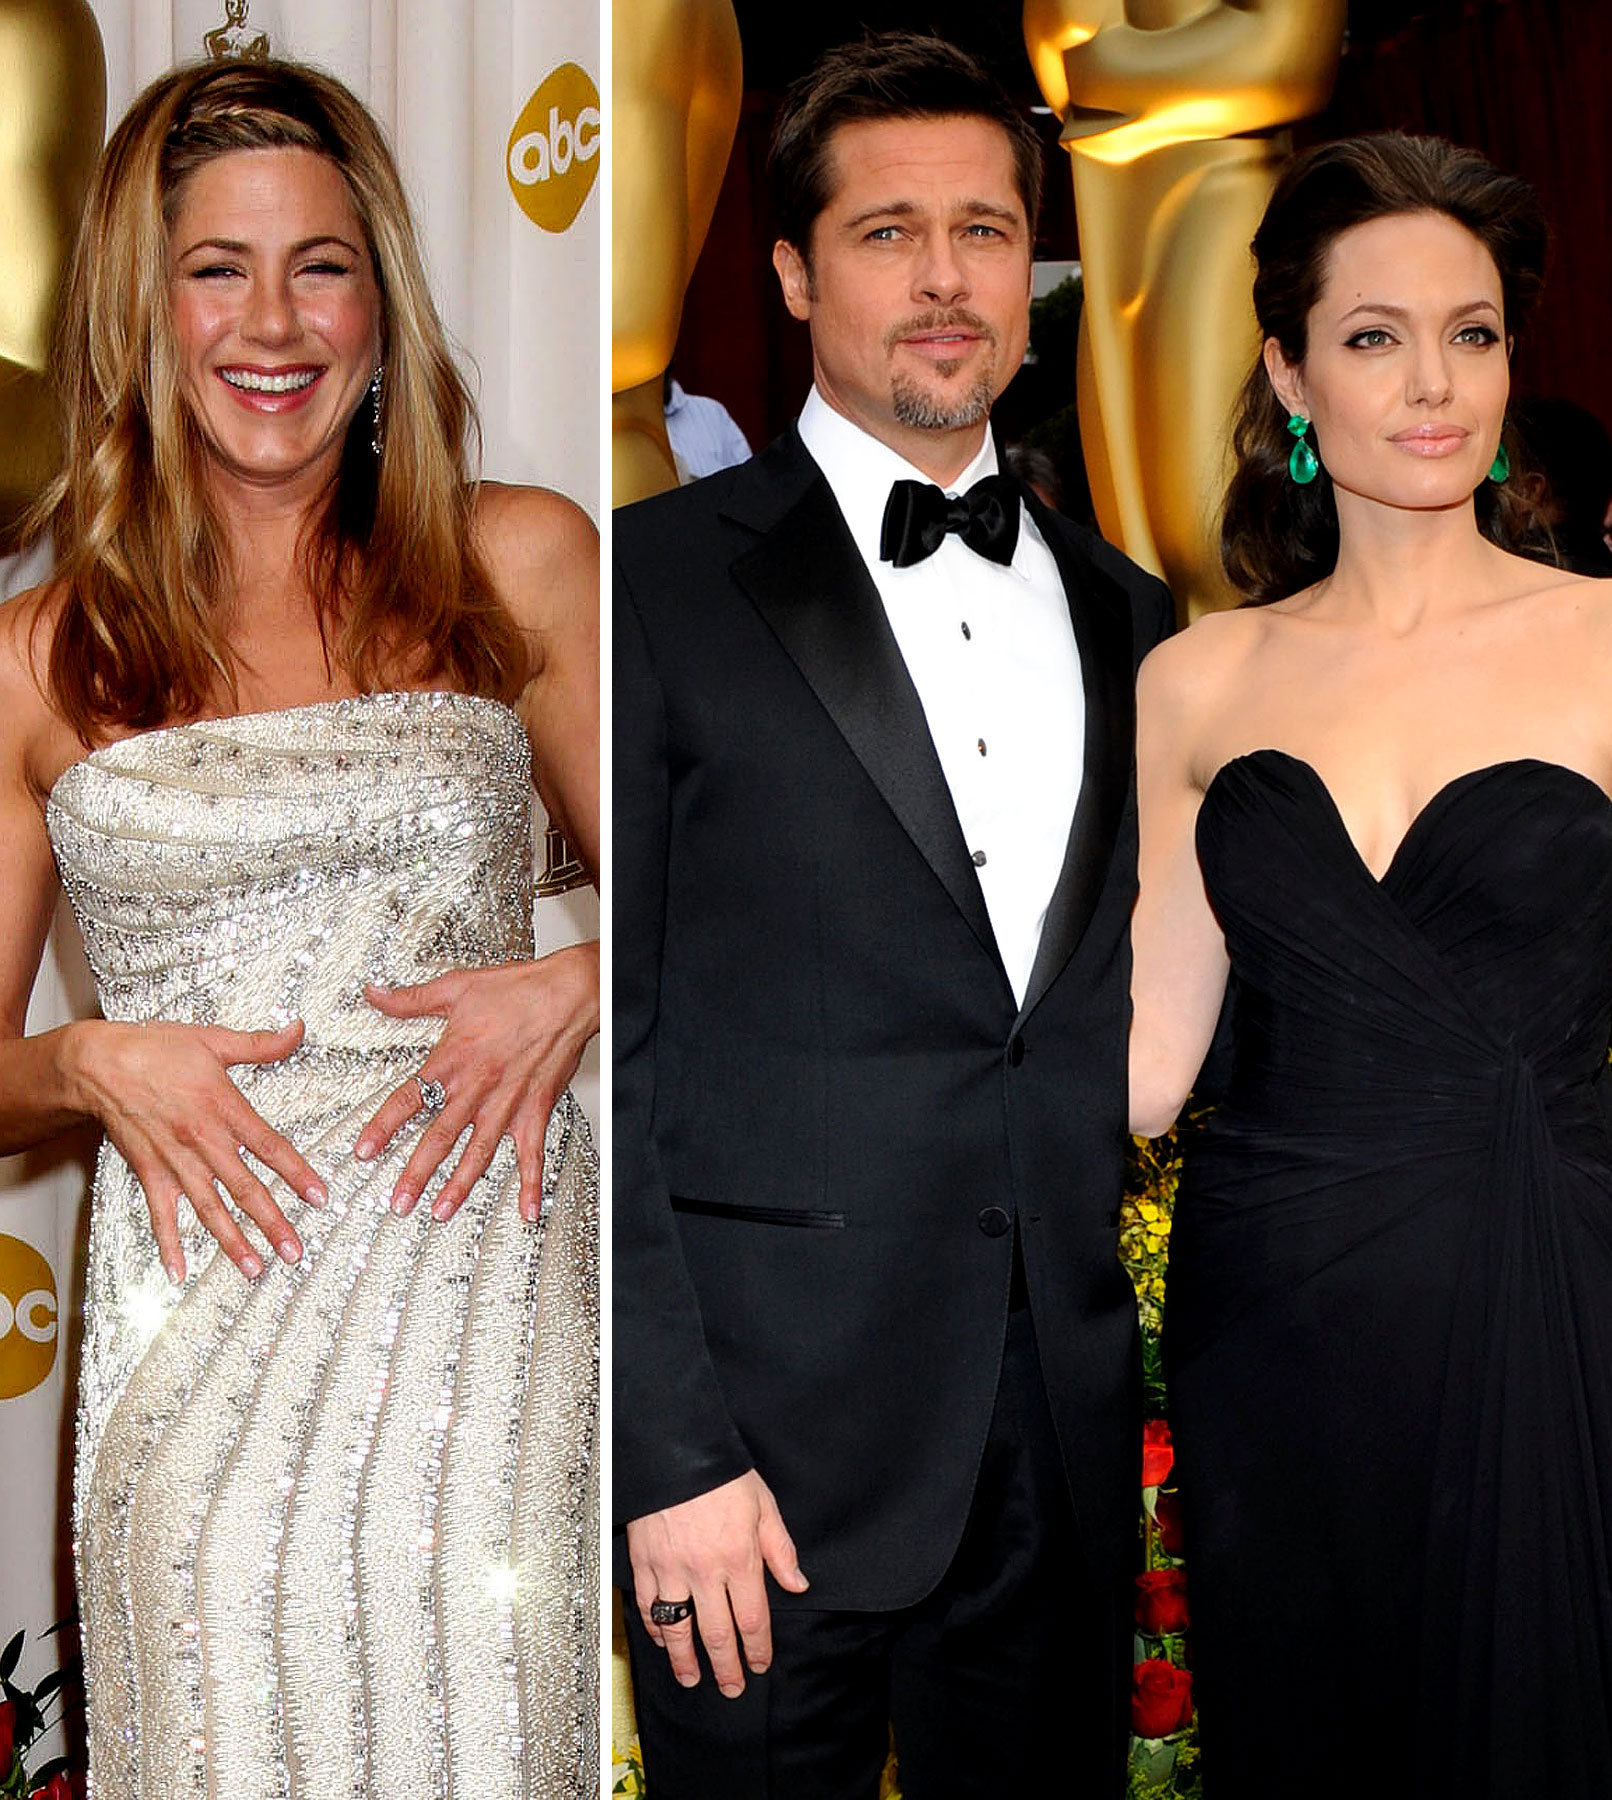 Angelina Jolie: Big Smiles For Aniston